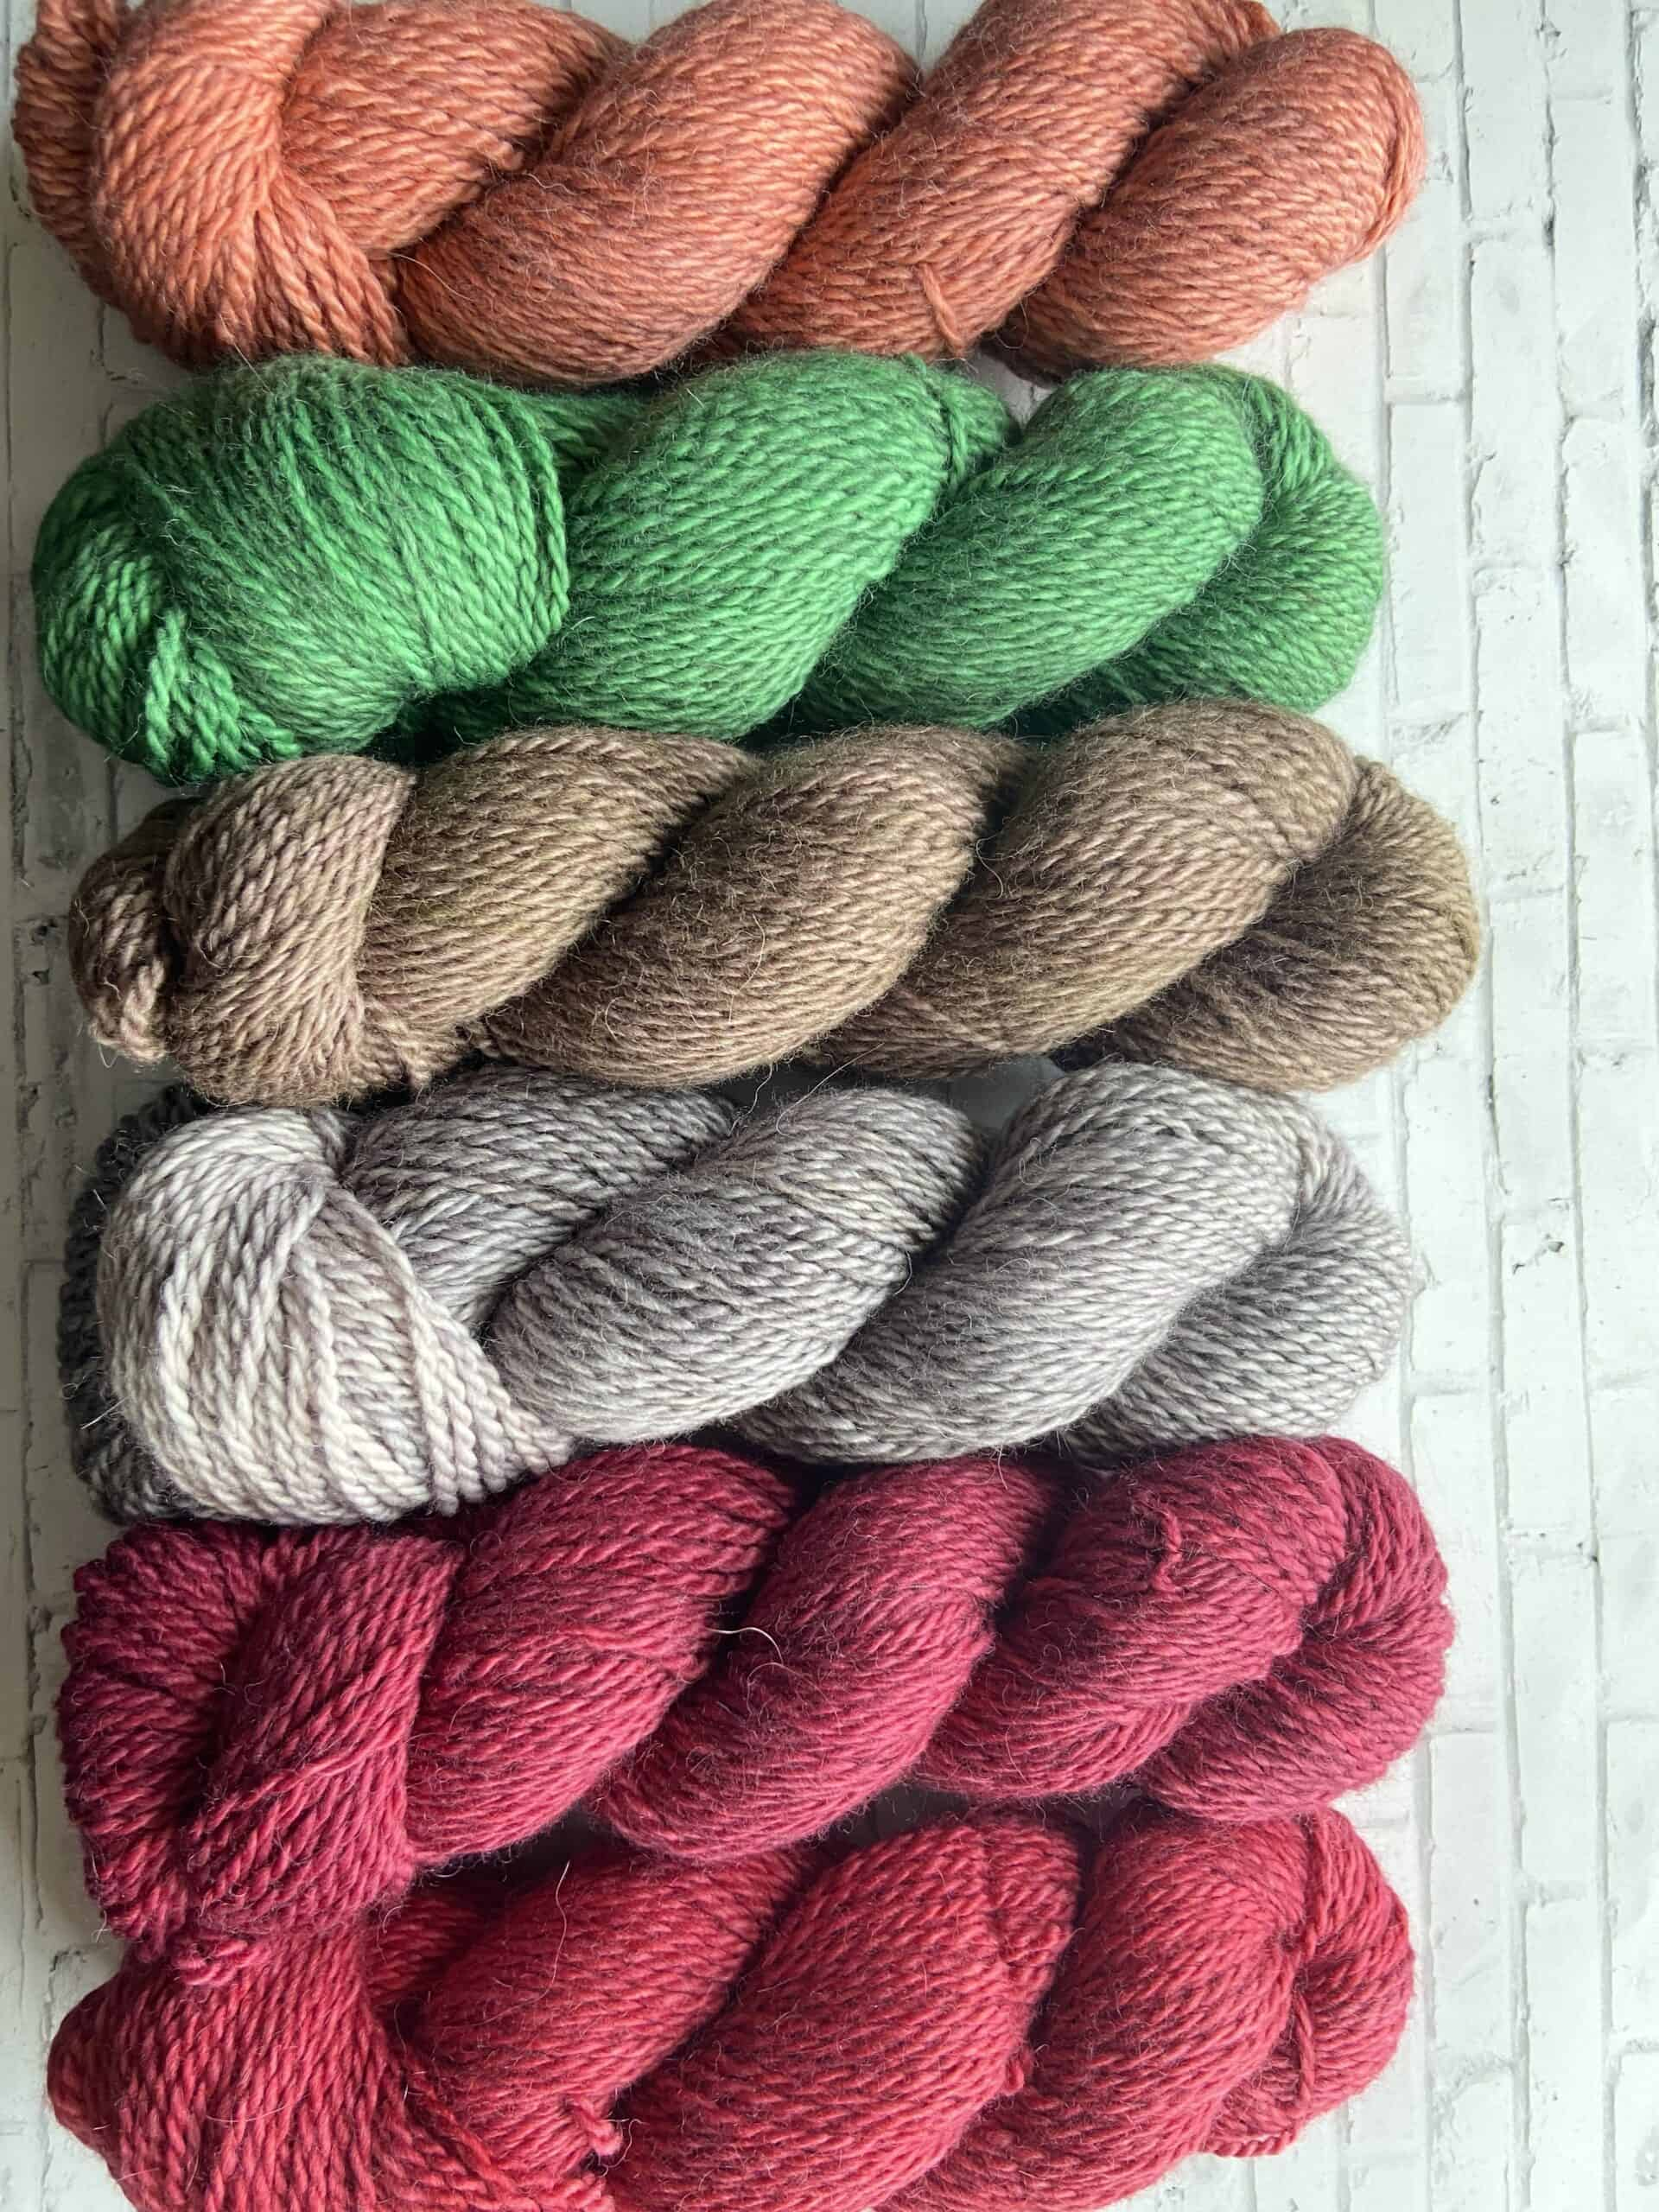 Skeins of green, beige, gray and pink yarn.